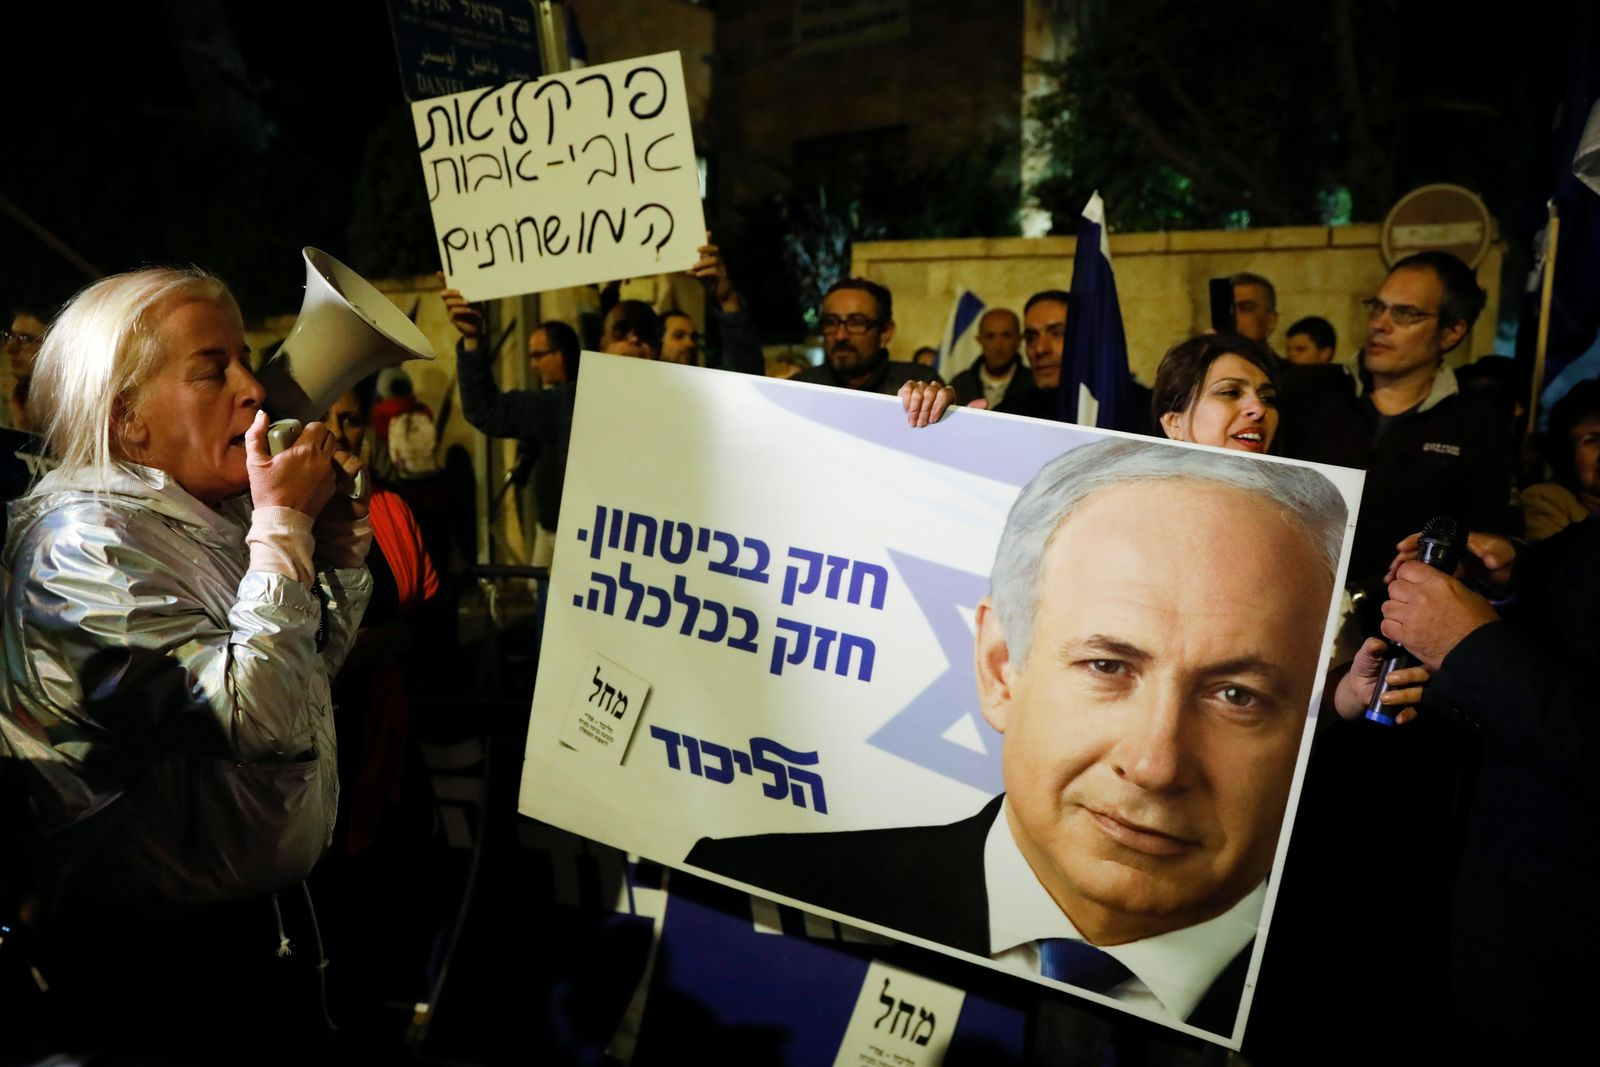 Supporters of Israeli Prime Minister Benjamin Netanyahu gather outside his residence in Jerusalem, Thursday, Nov. 21, 2019.(AP Photo/Ariel Schalit)